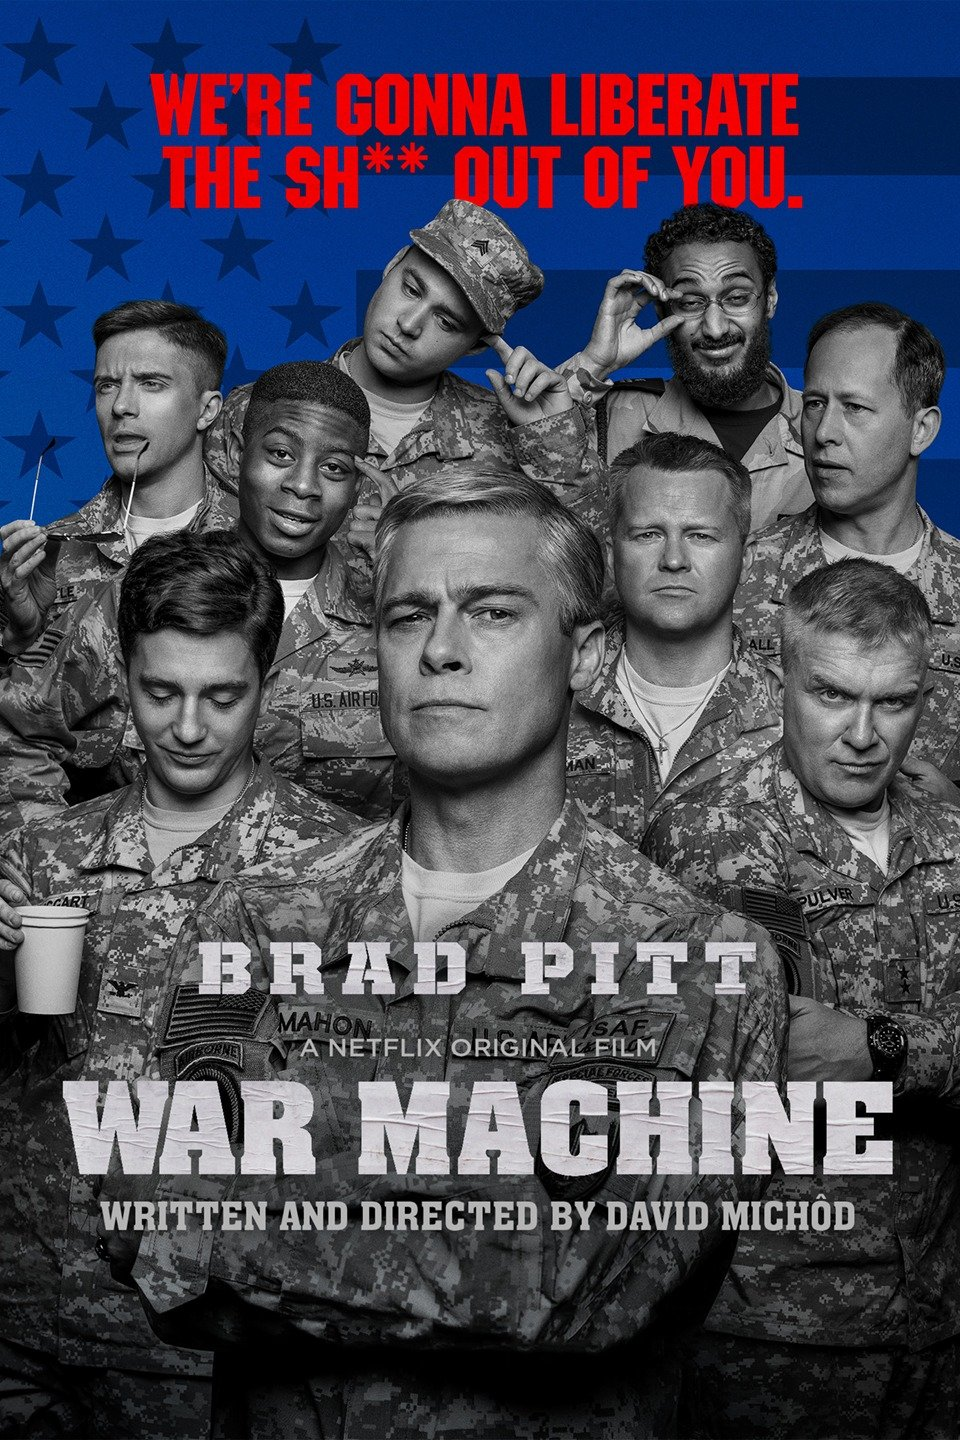 War Machine-War Machine